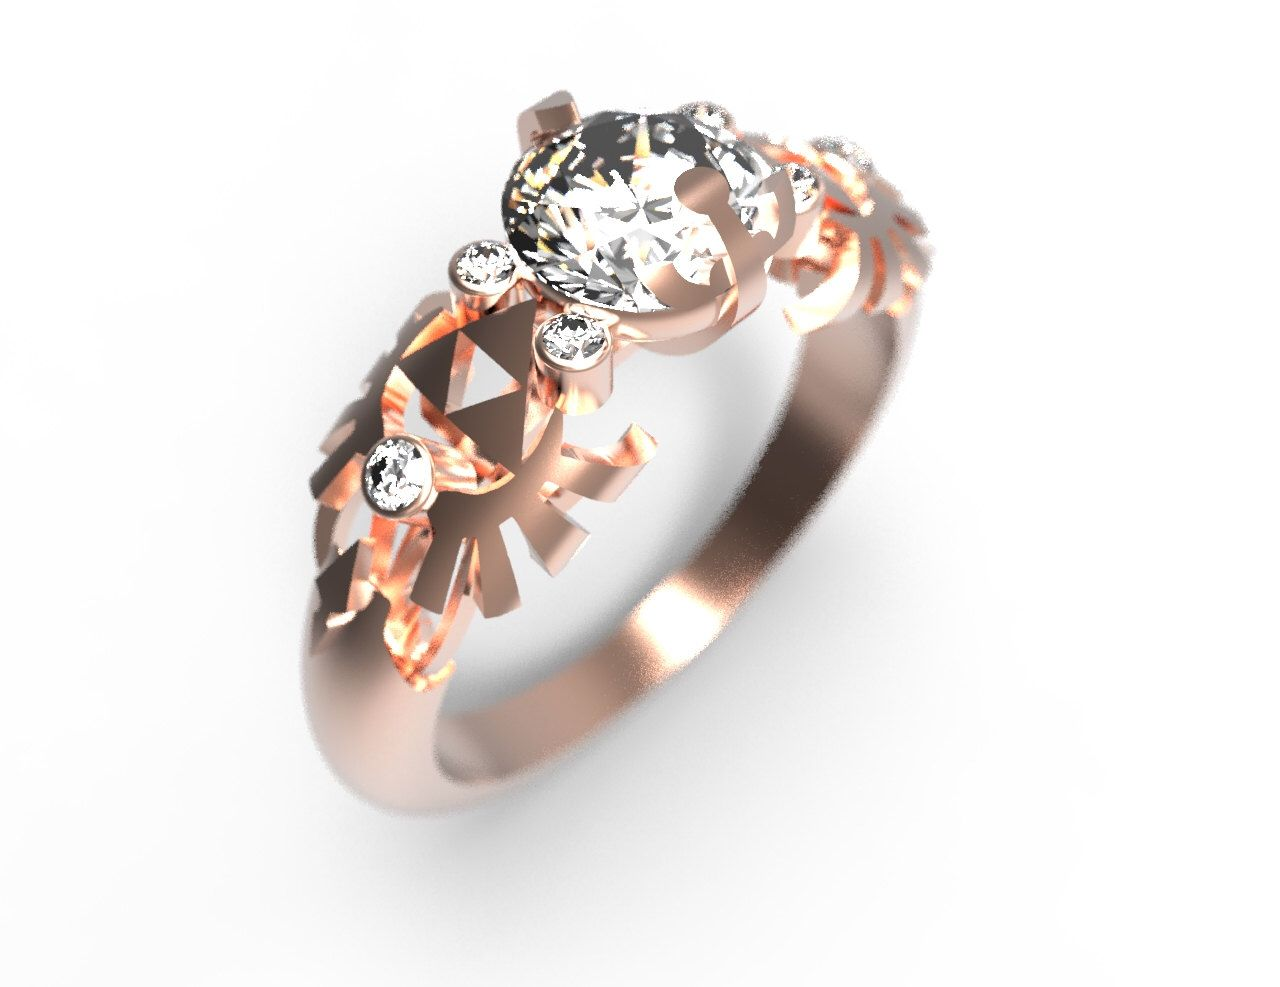 Zelda Engagement Ring Triforce Inspired Rose Gold Engagement Etsy Zelda Engagement Ring Geek Engagement Rings Zelda Engagement